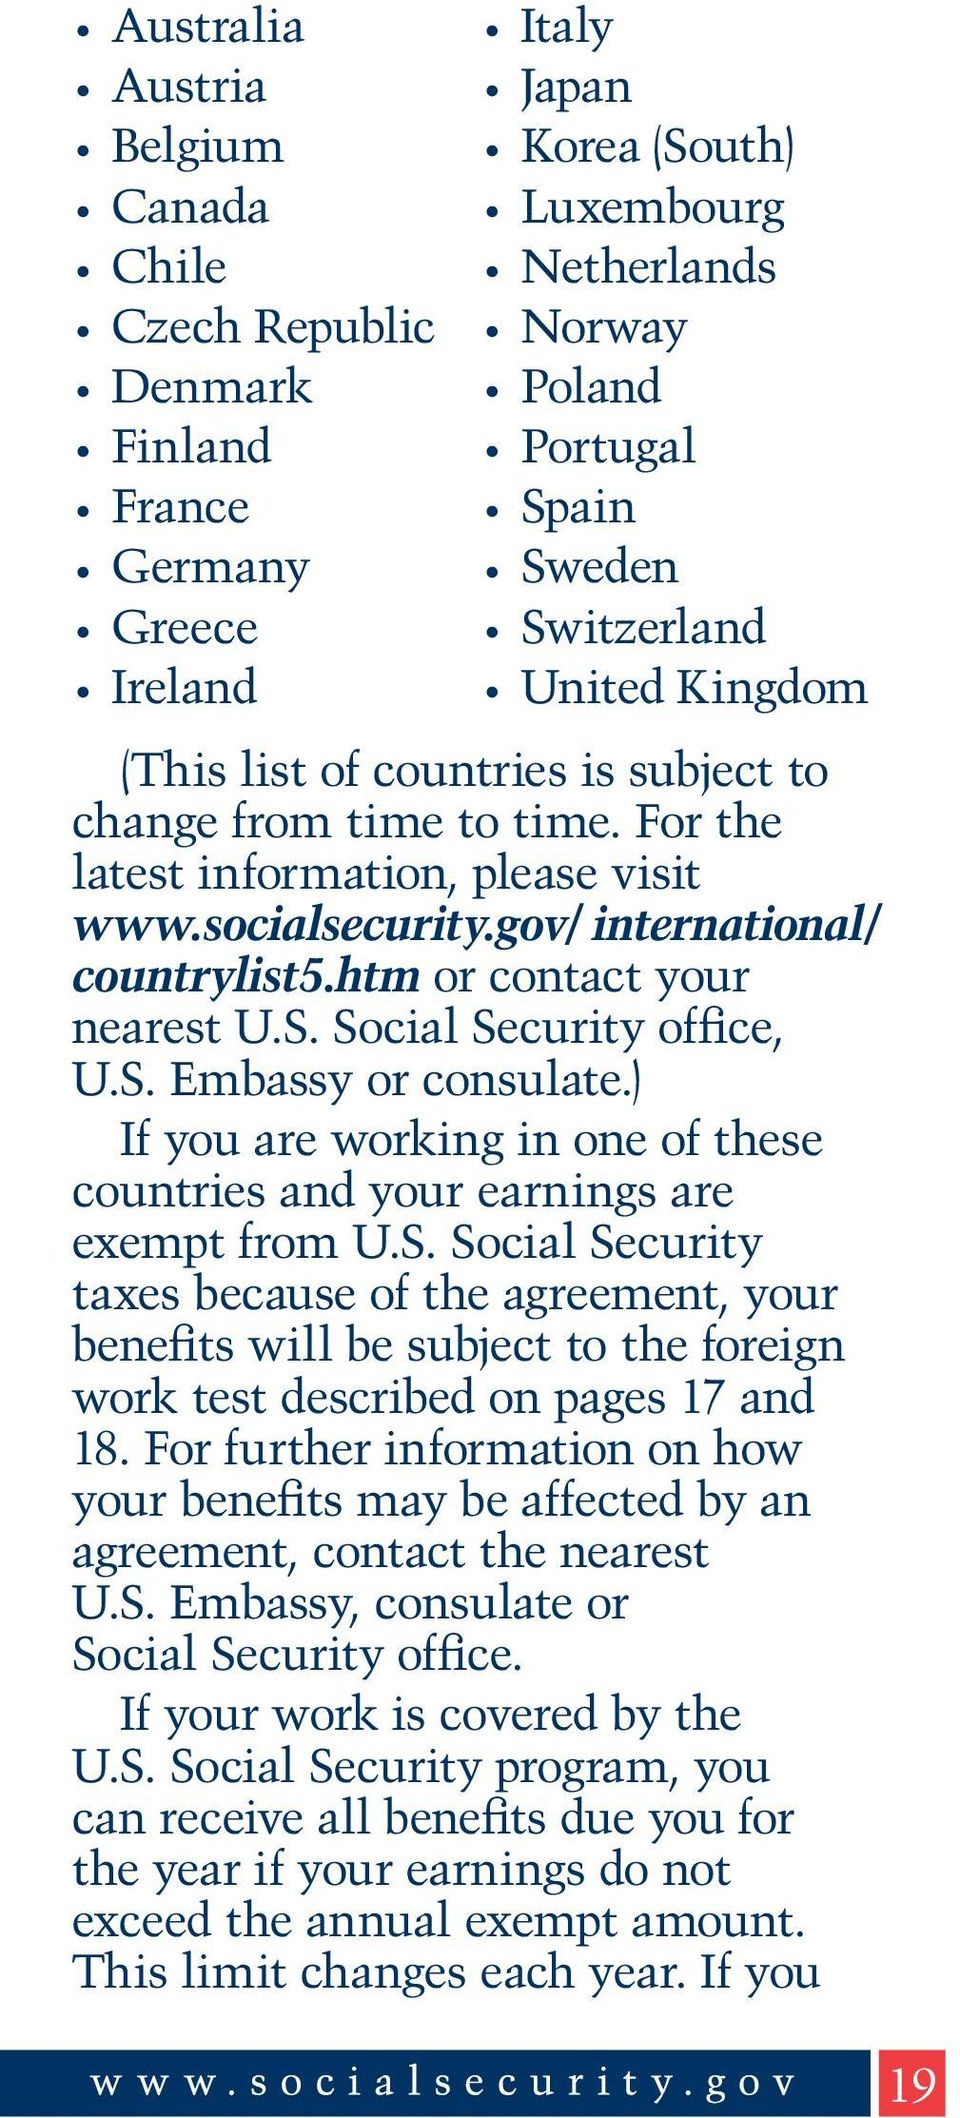 htm or contact your nearest U.S. Social Security office, U.S. Embassy or consulate.) If you are working in one of these countries and your earnings are exempt from U.S. Social Security taxes because of the agreement, your benefits will be subject to the foreign work test described on pages 17 and 18.